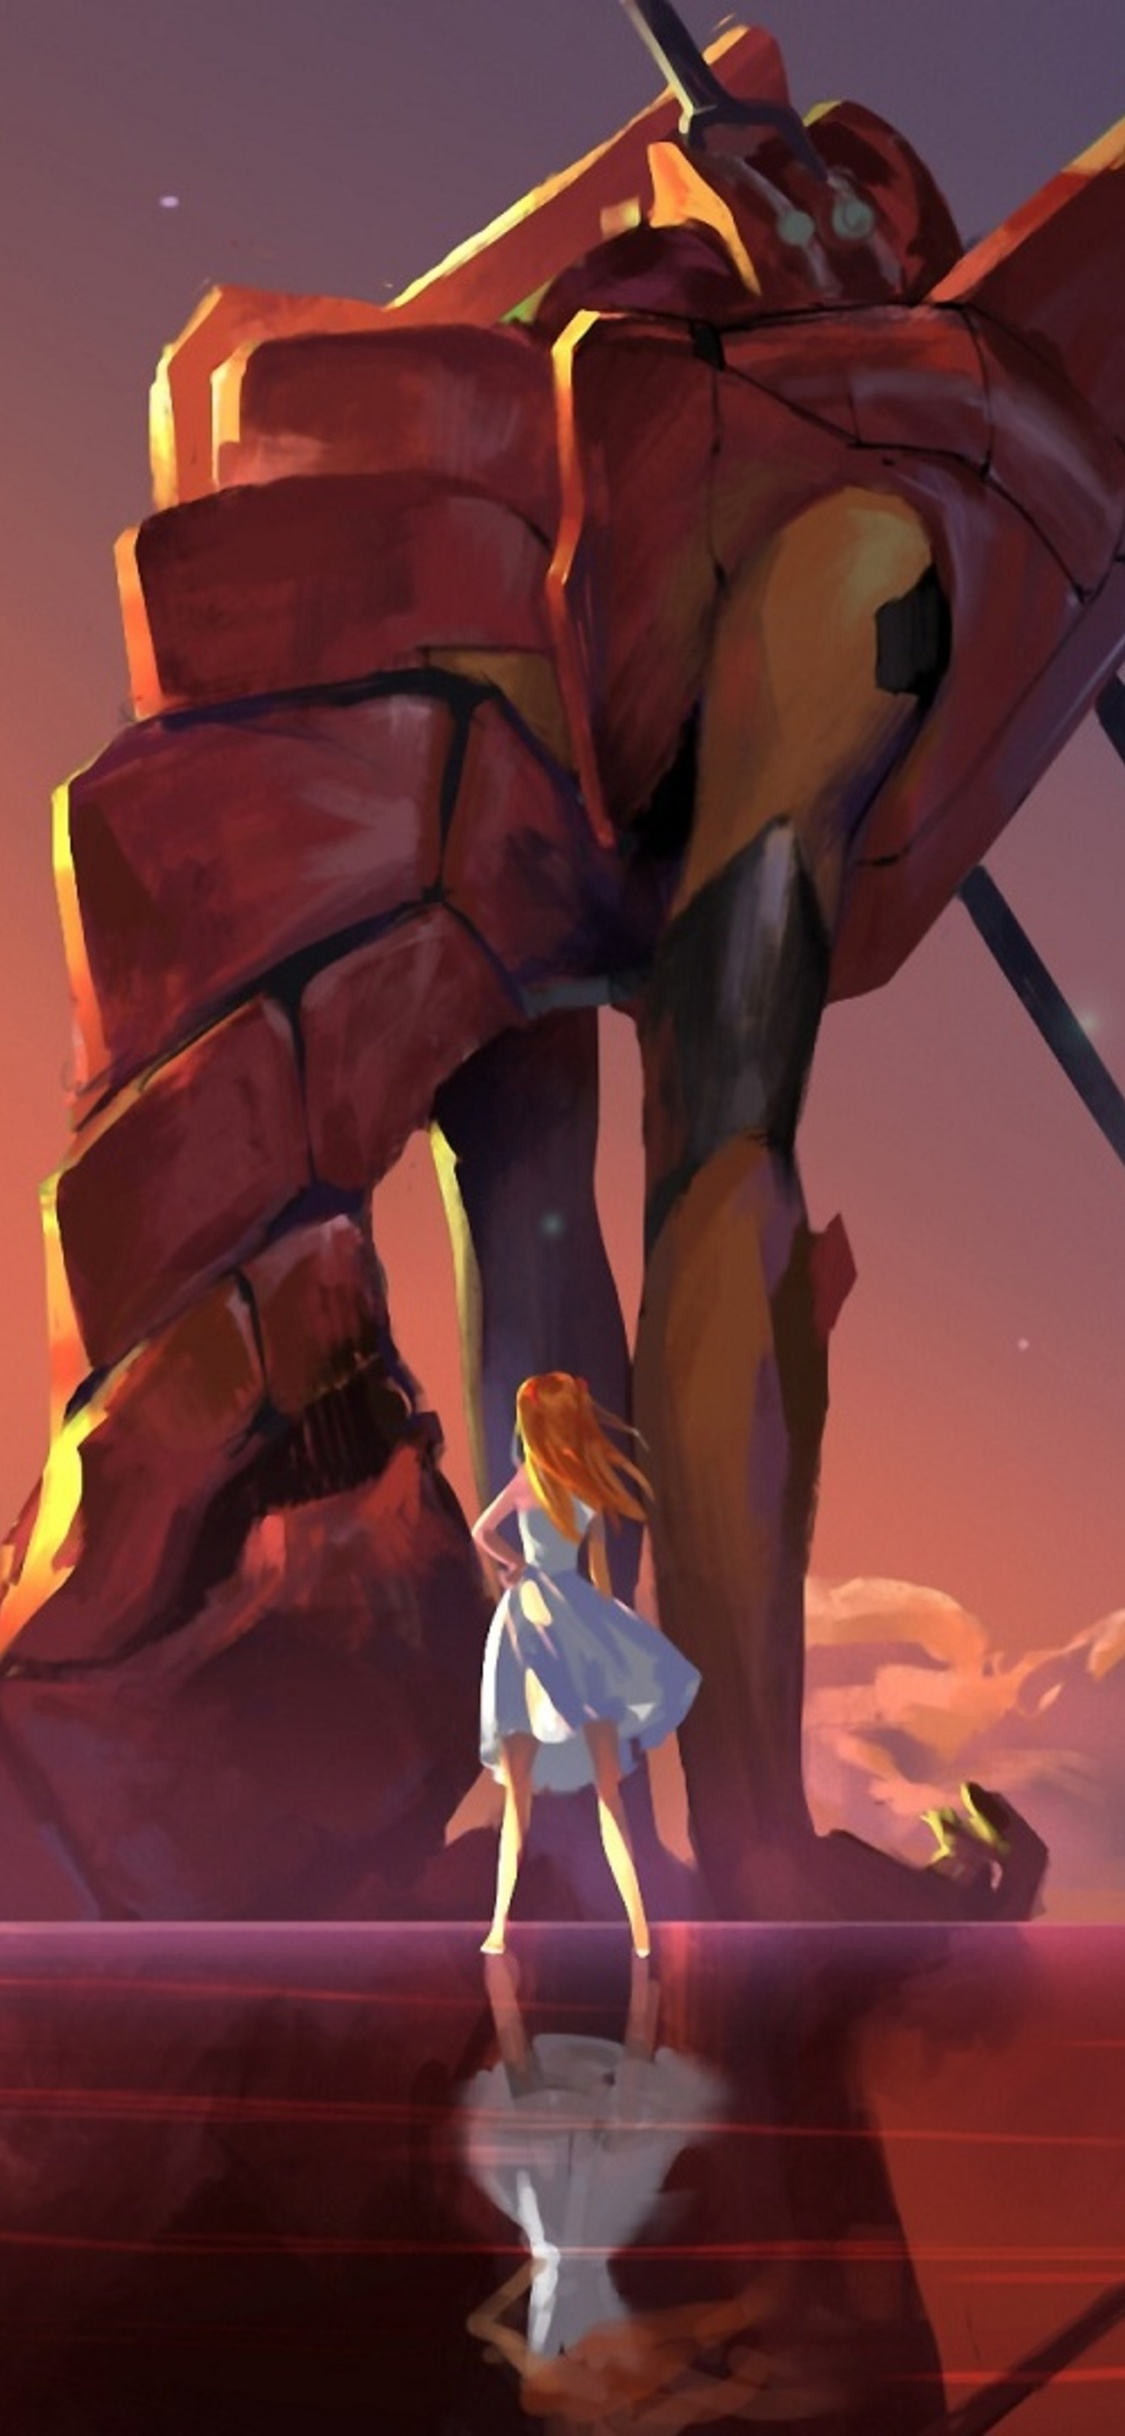 4k Resolution Neon Wallpaper Hd Neon Genesis Evangelion Wallpaper Iphone